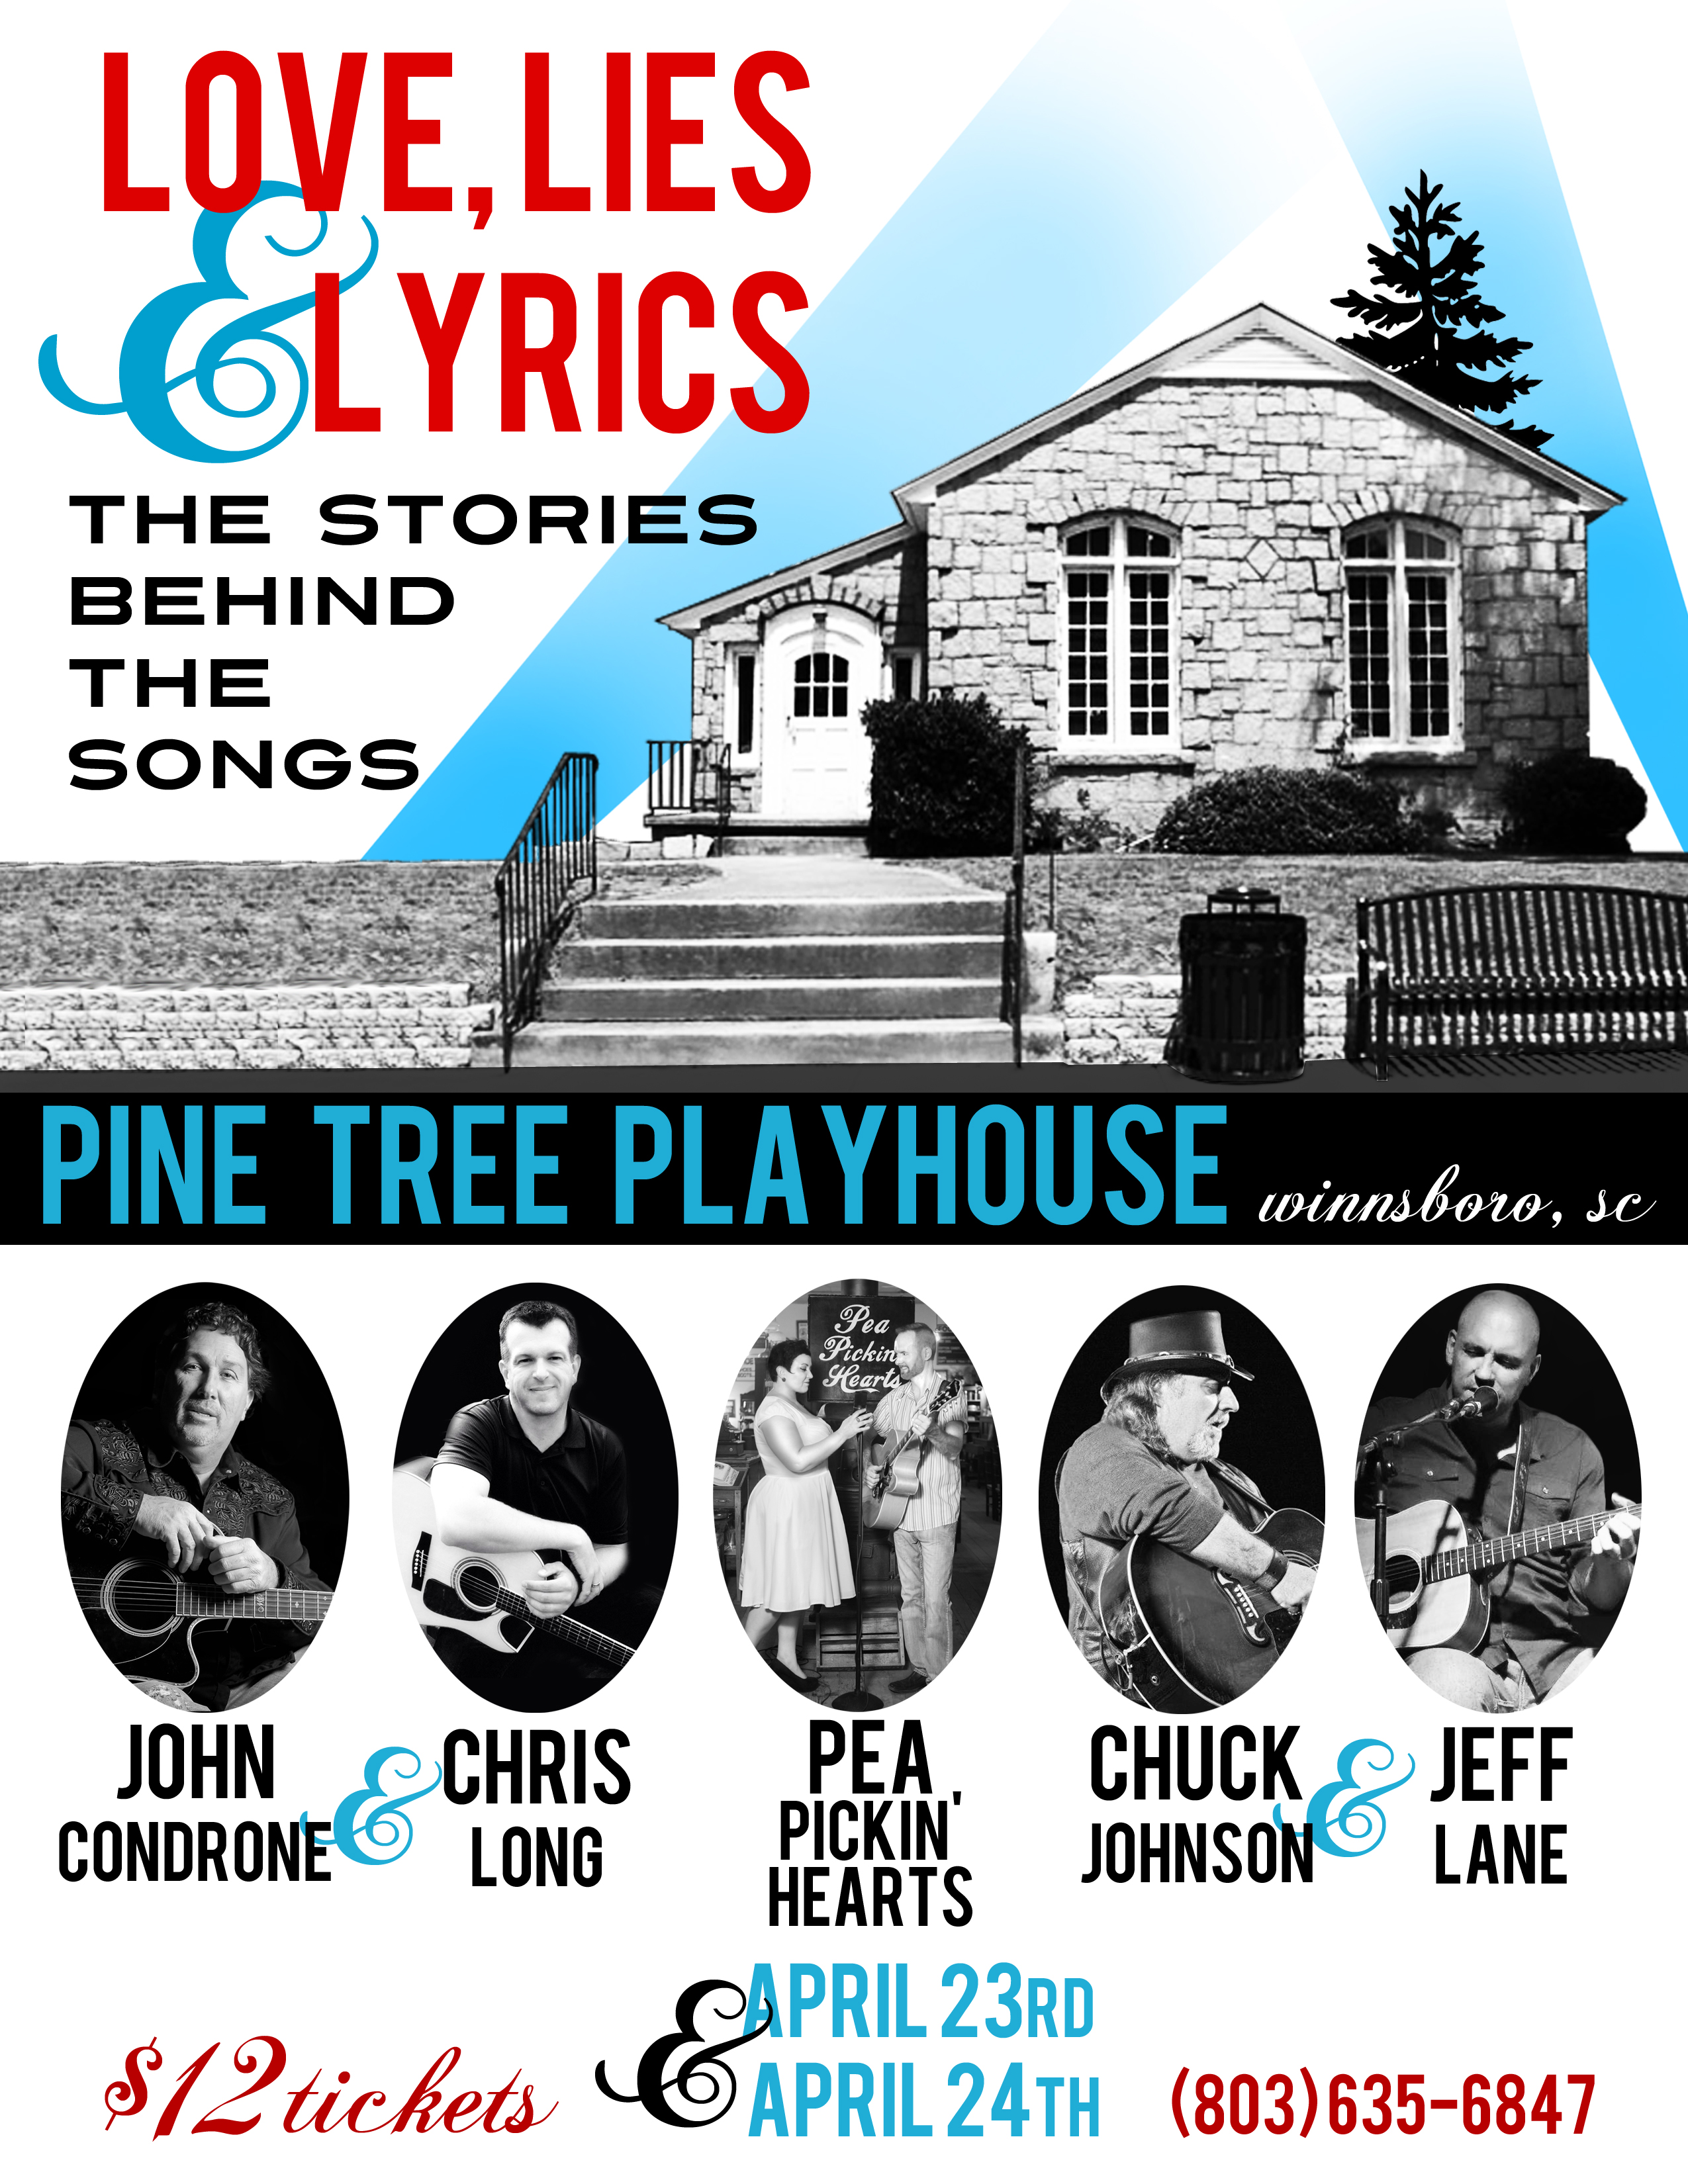 Hear the Pea Pickin' Hearts at Pine Tree Playhouse in Winnsboro, SC!